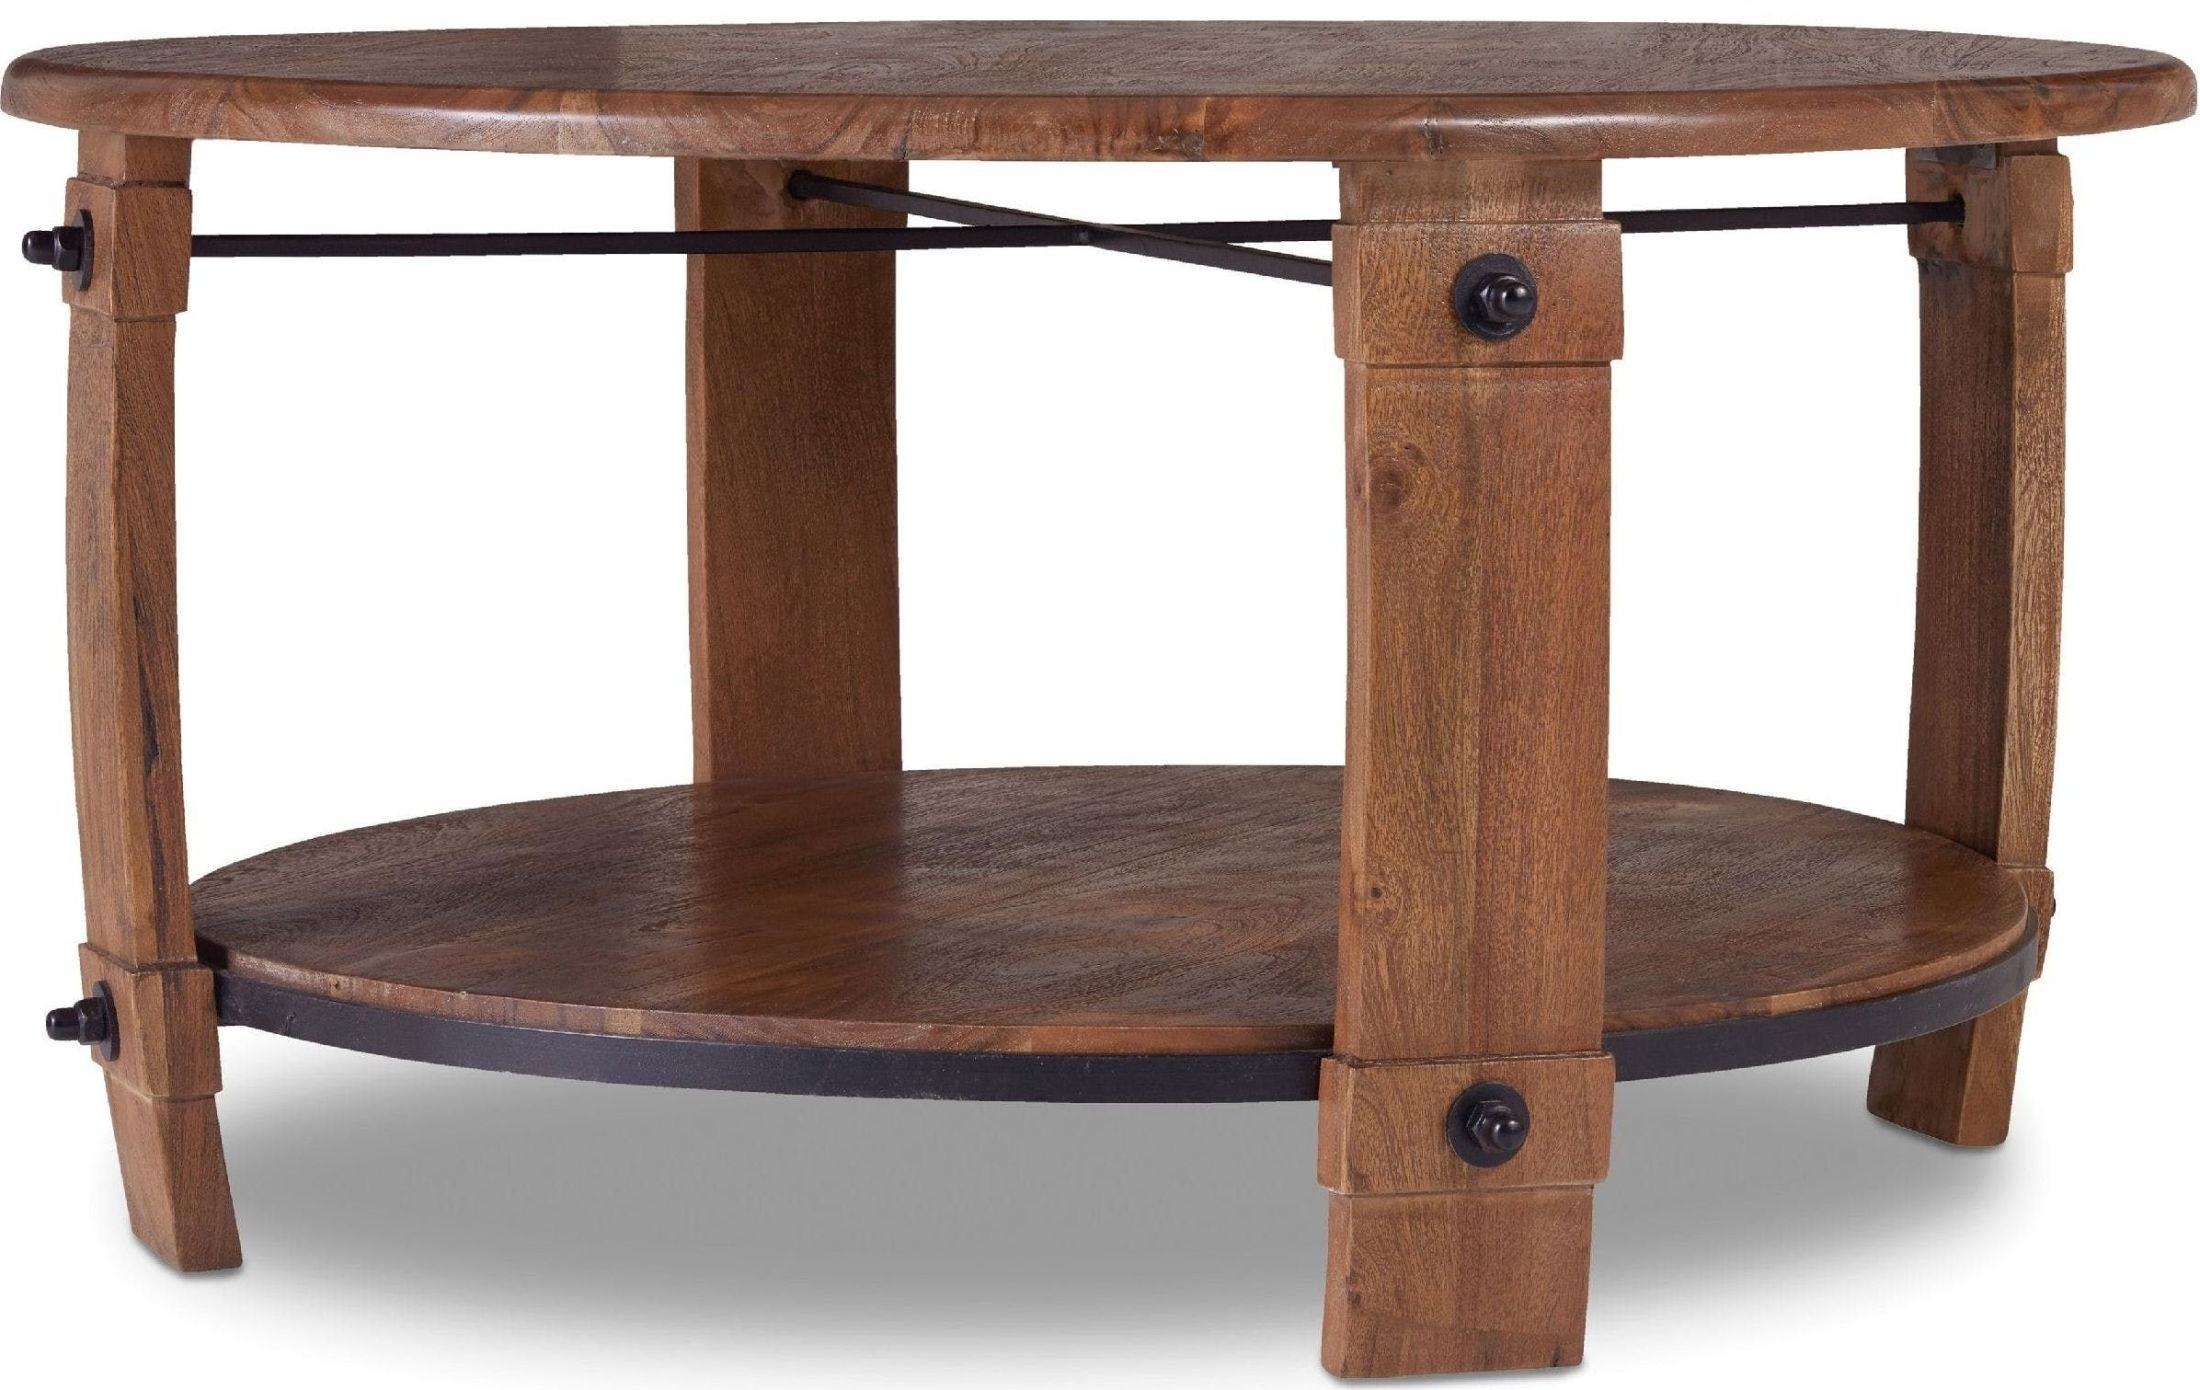 Glen Hurst Brown Round Wine Barrel Cocktail Table From Hooker For Current Exton Cocktail Tables (Gallery 6 of 20)